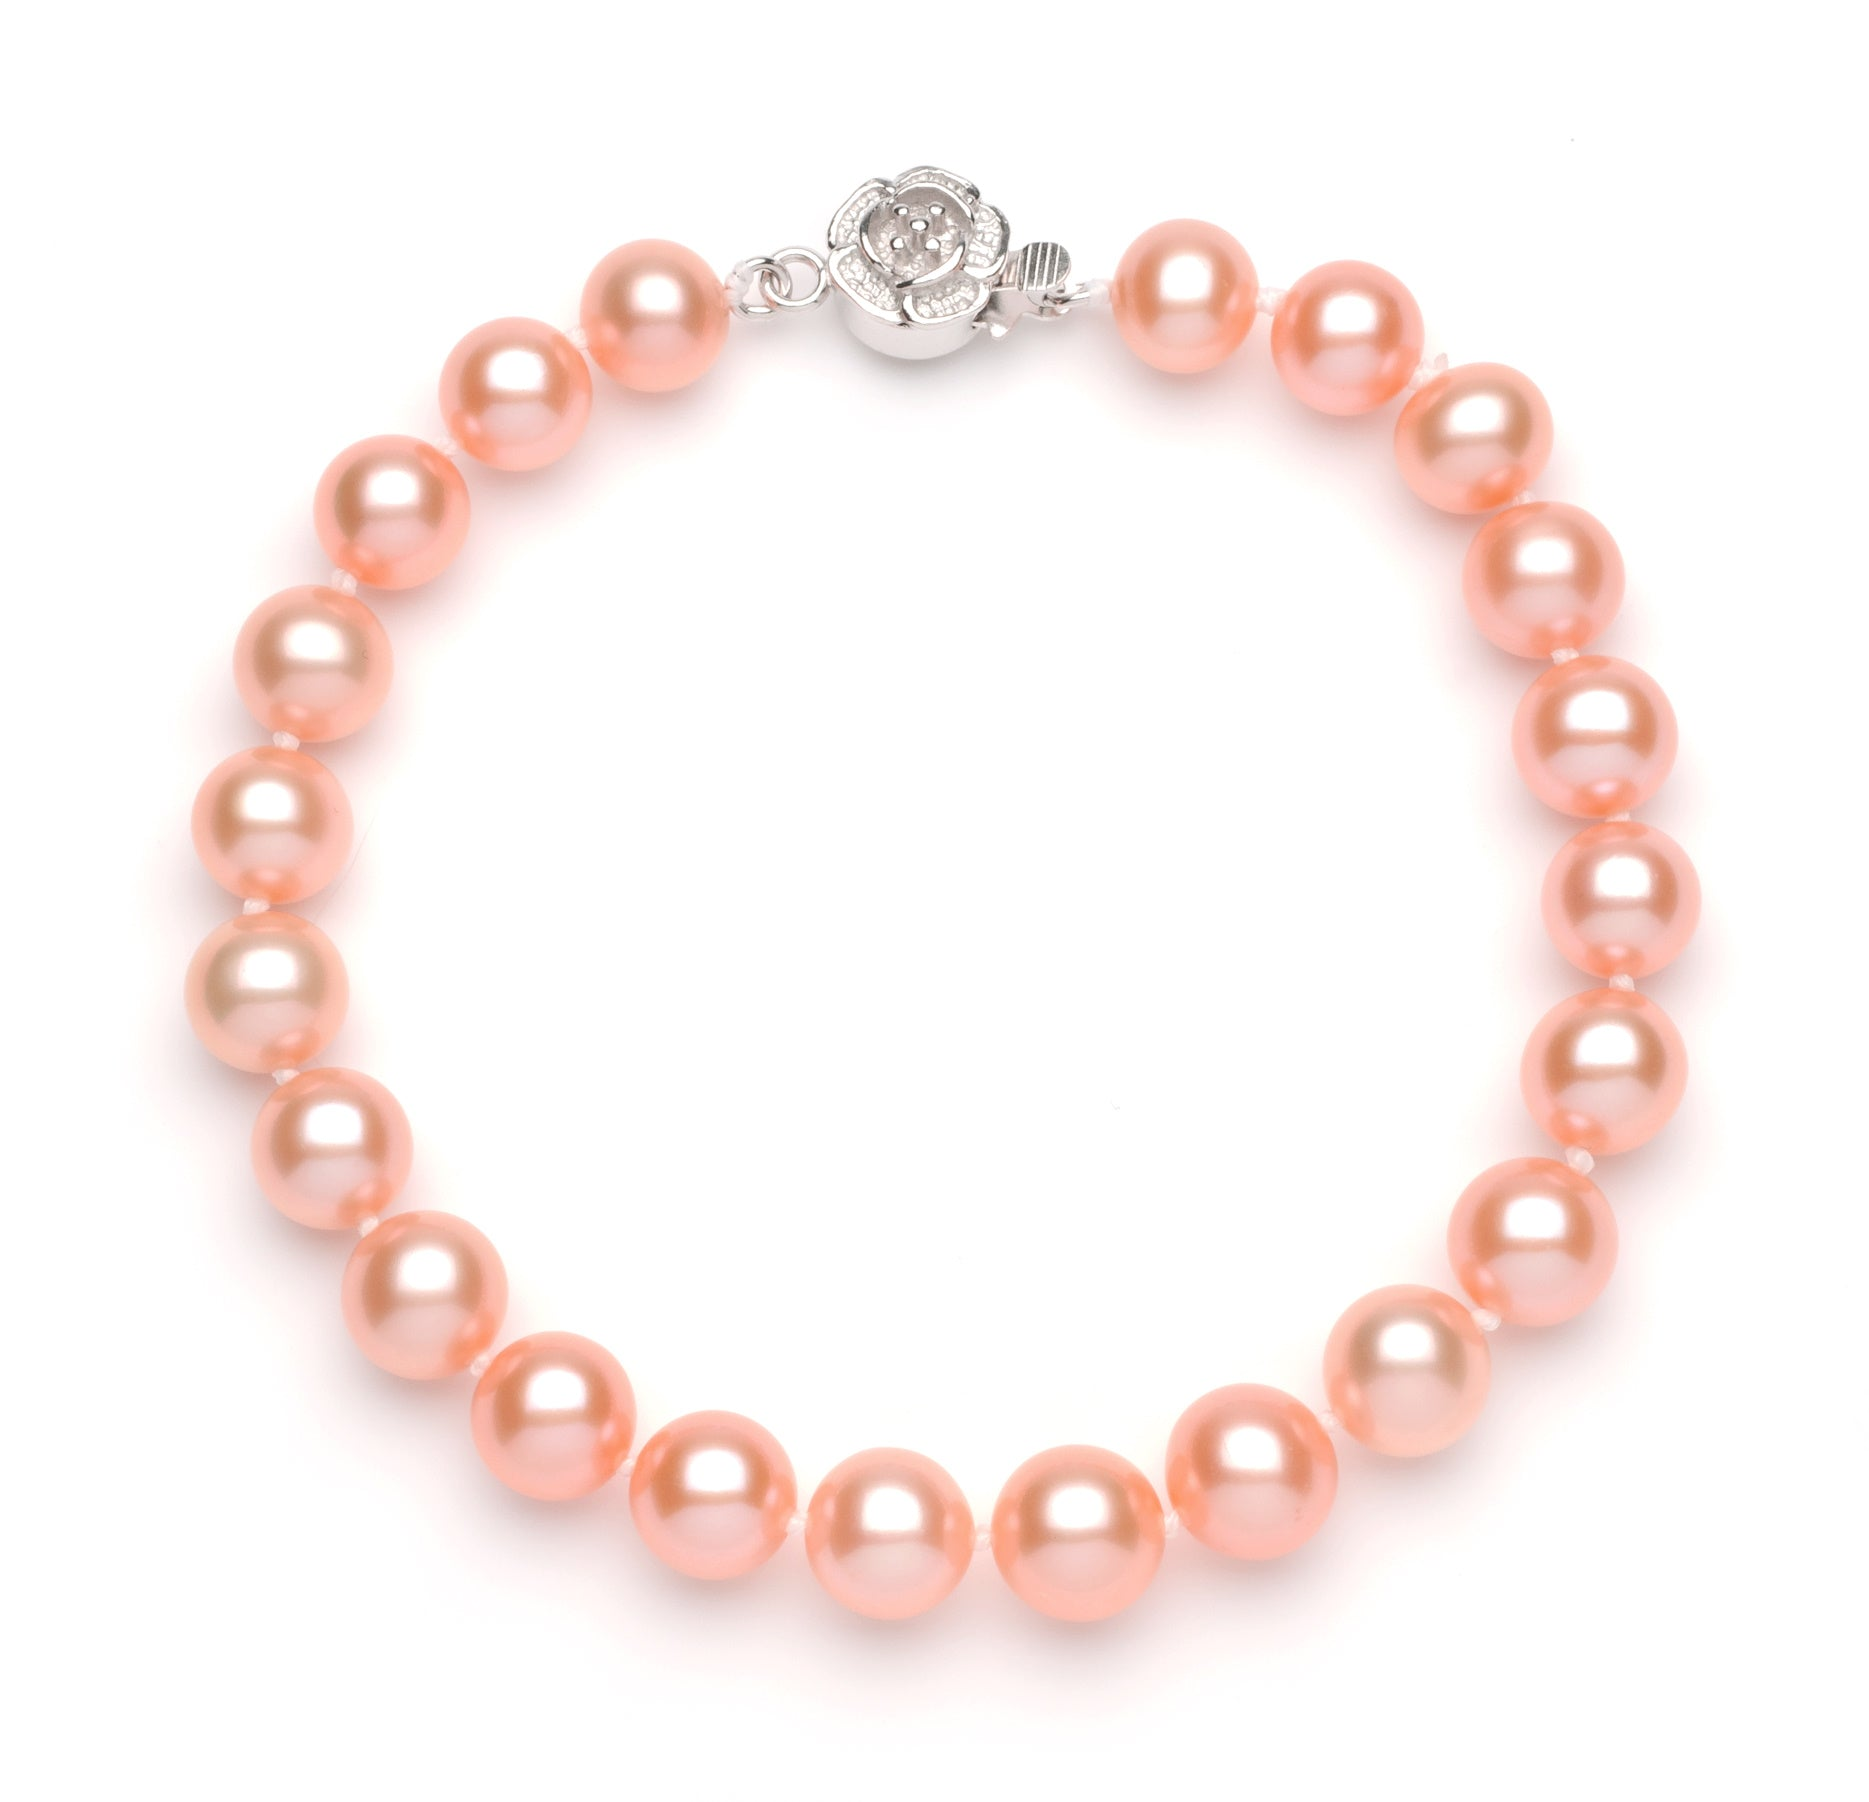 Necklace/Bracelet Set 8.0-9.0 mm Pink Freshwater Pearls